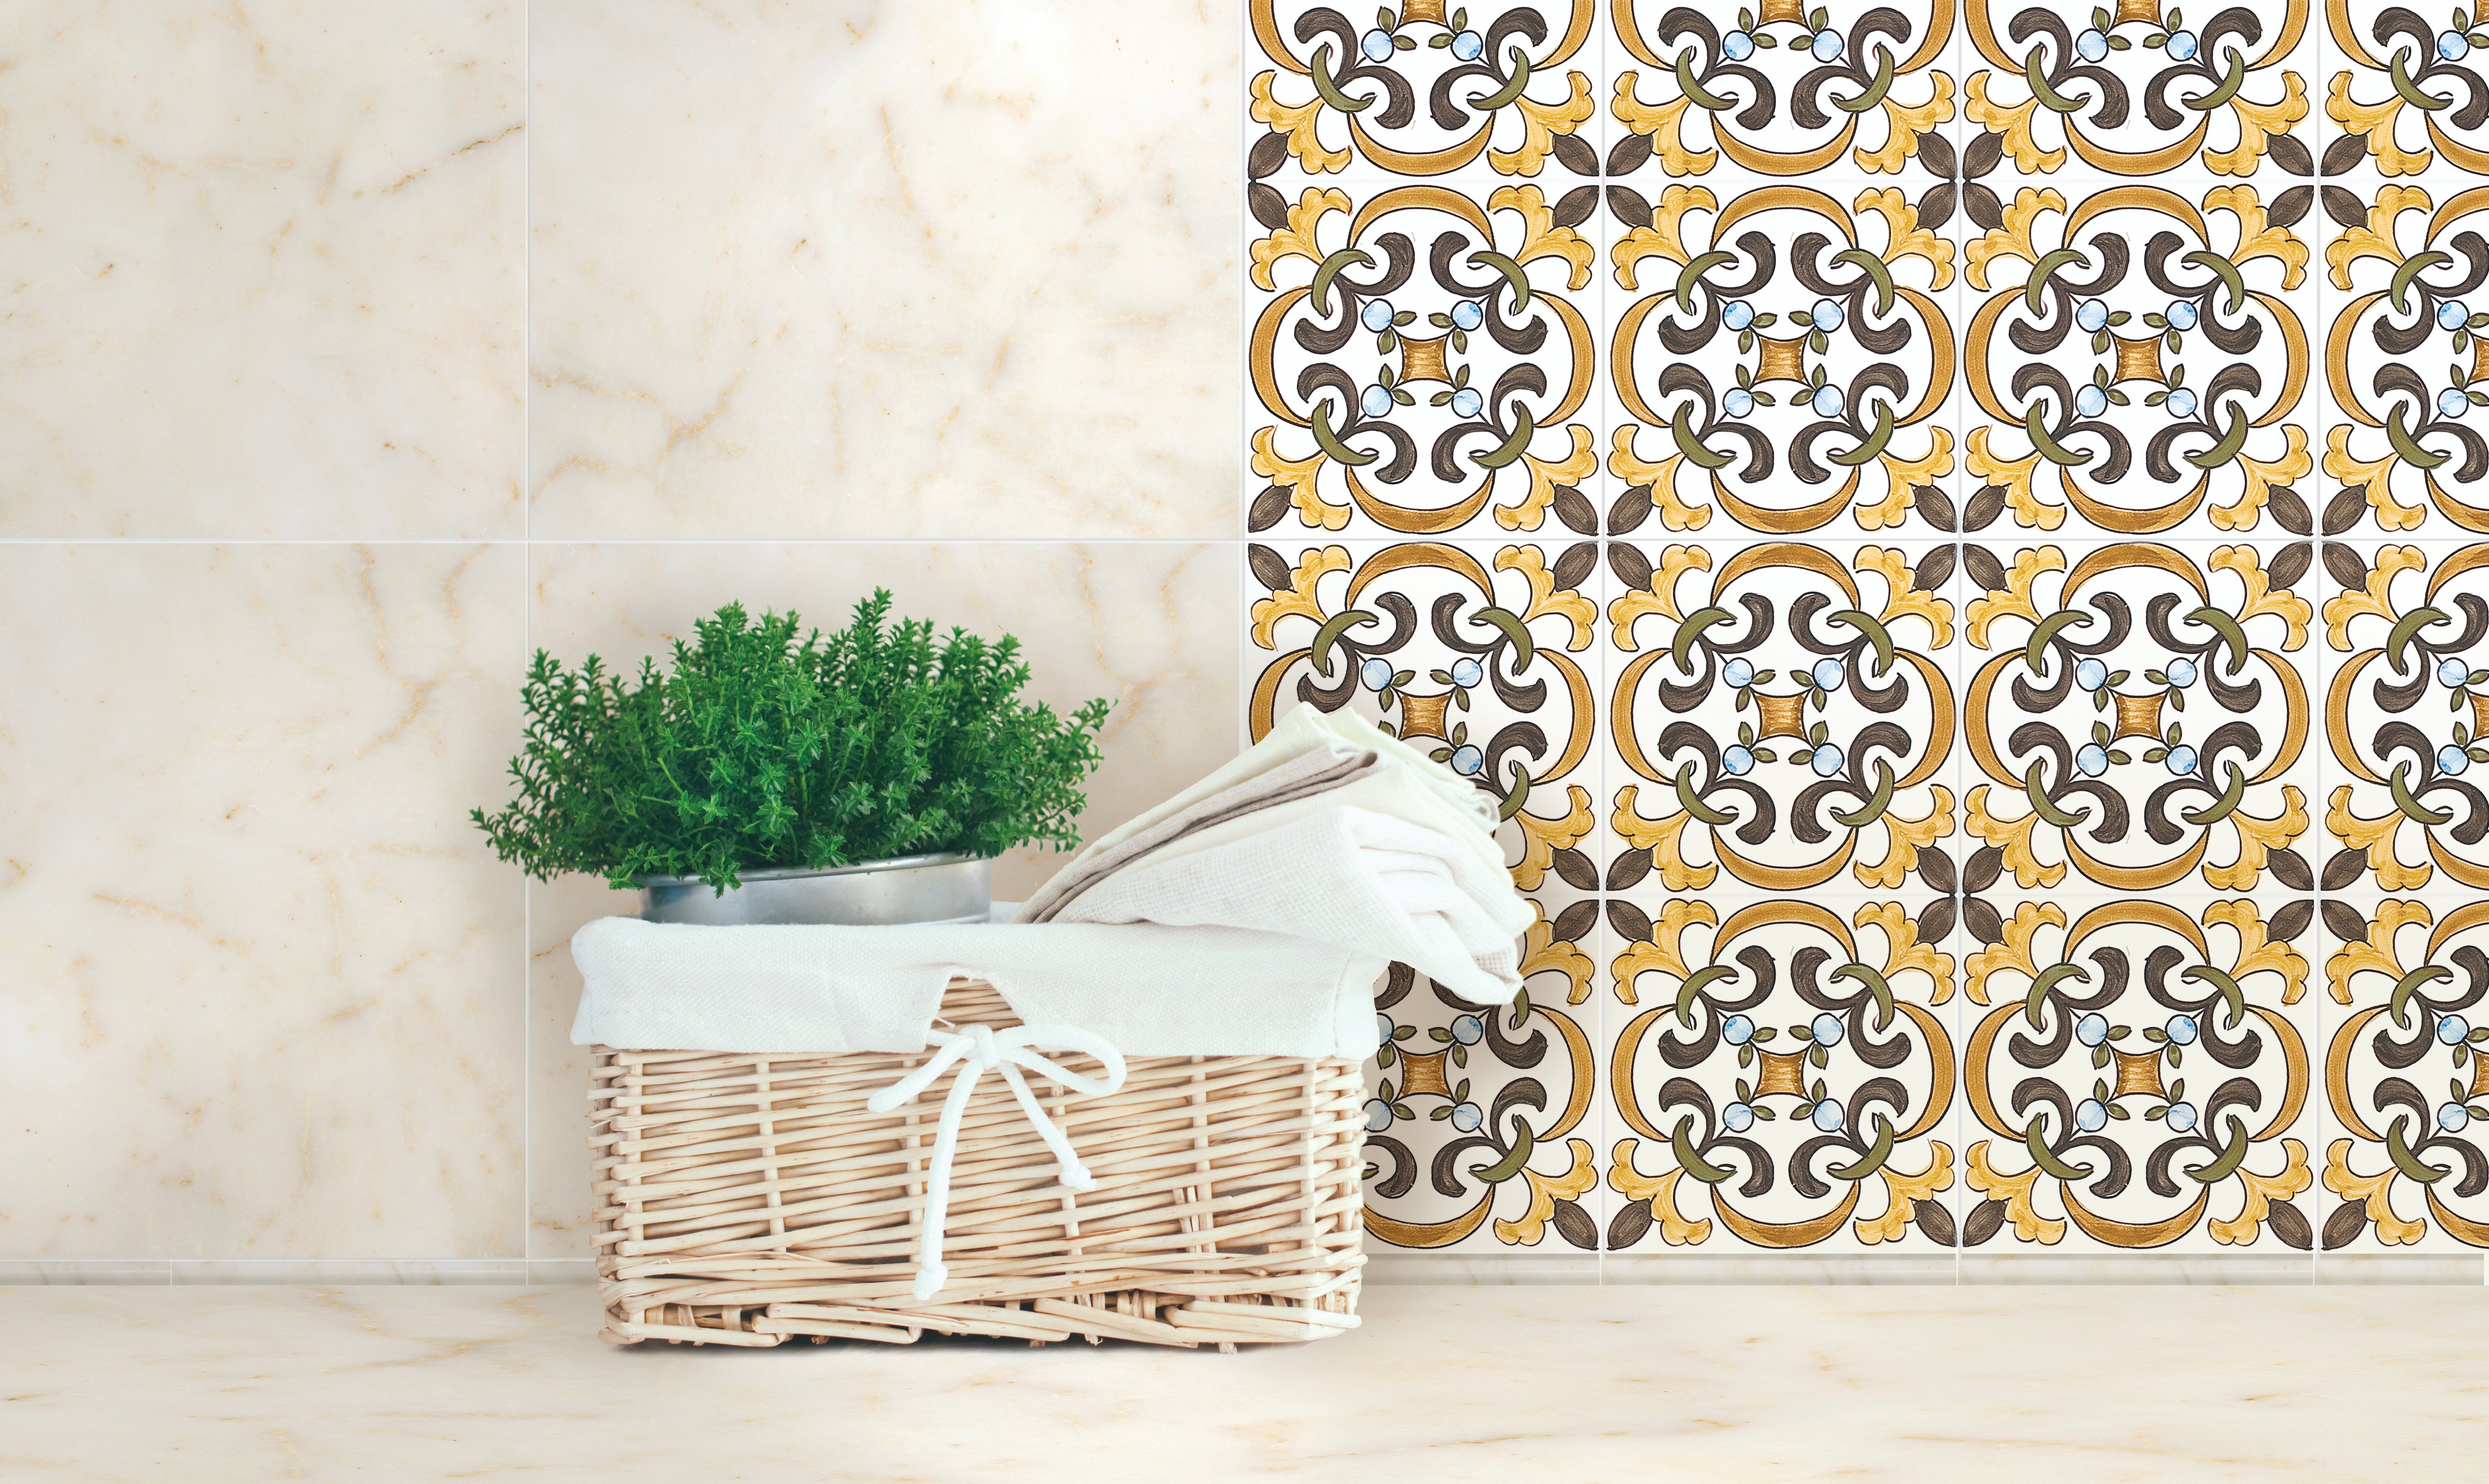 marble together with ceramic tile